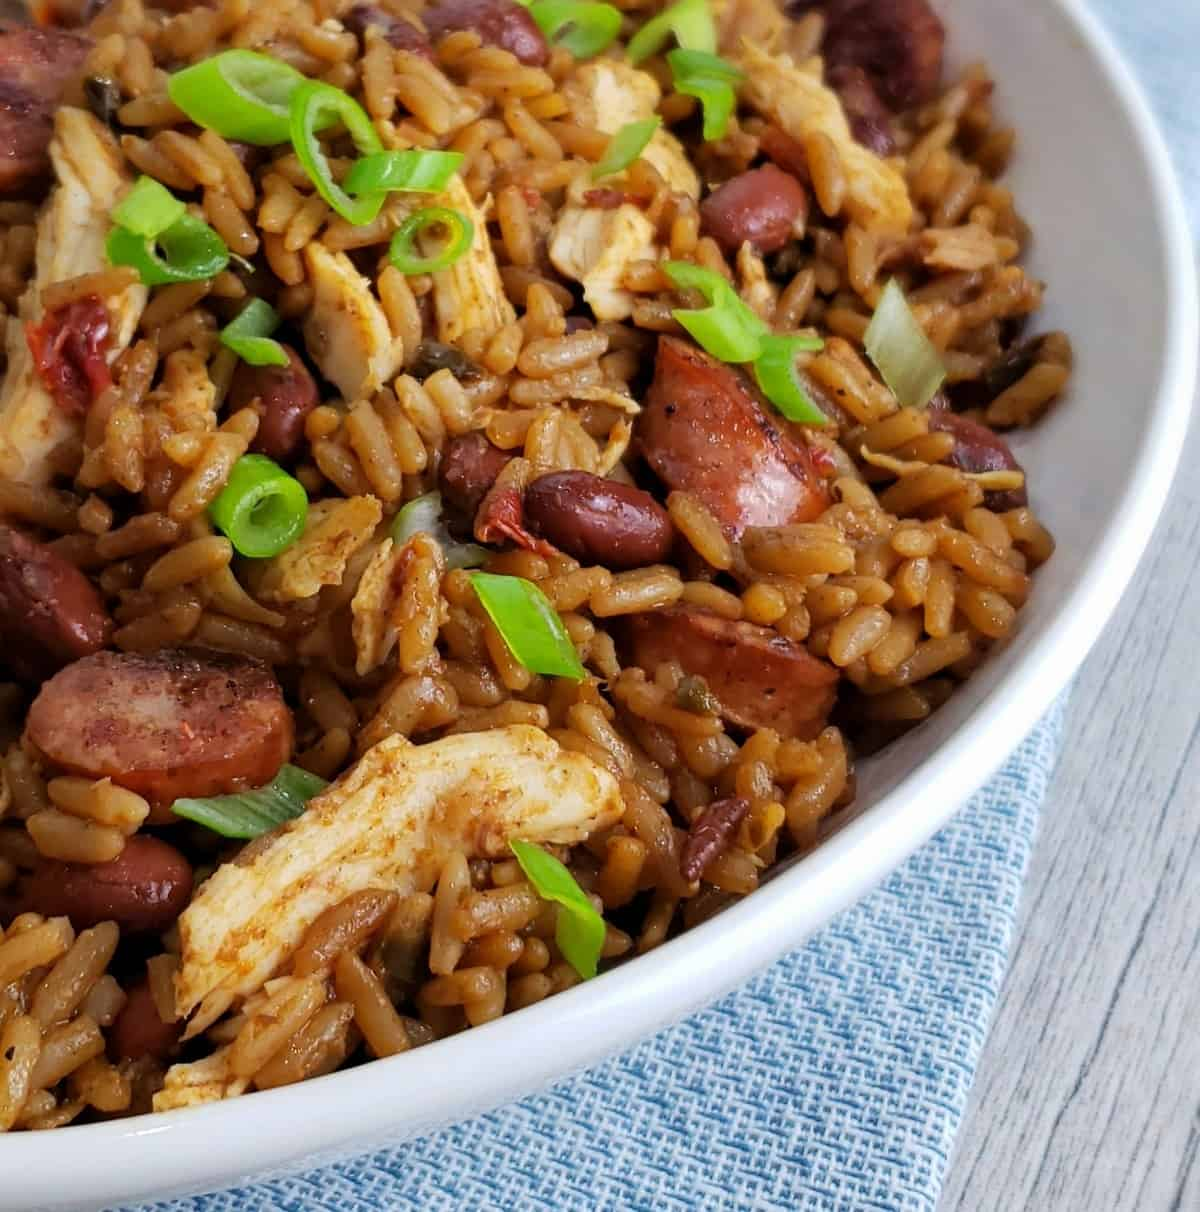 chicken sausage rice red beans green onions in white bowl on blue cloth